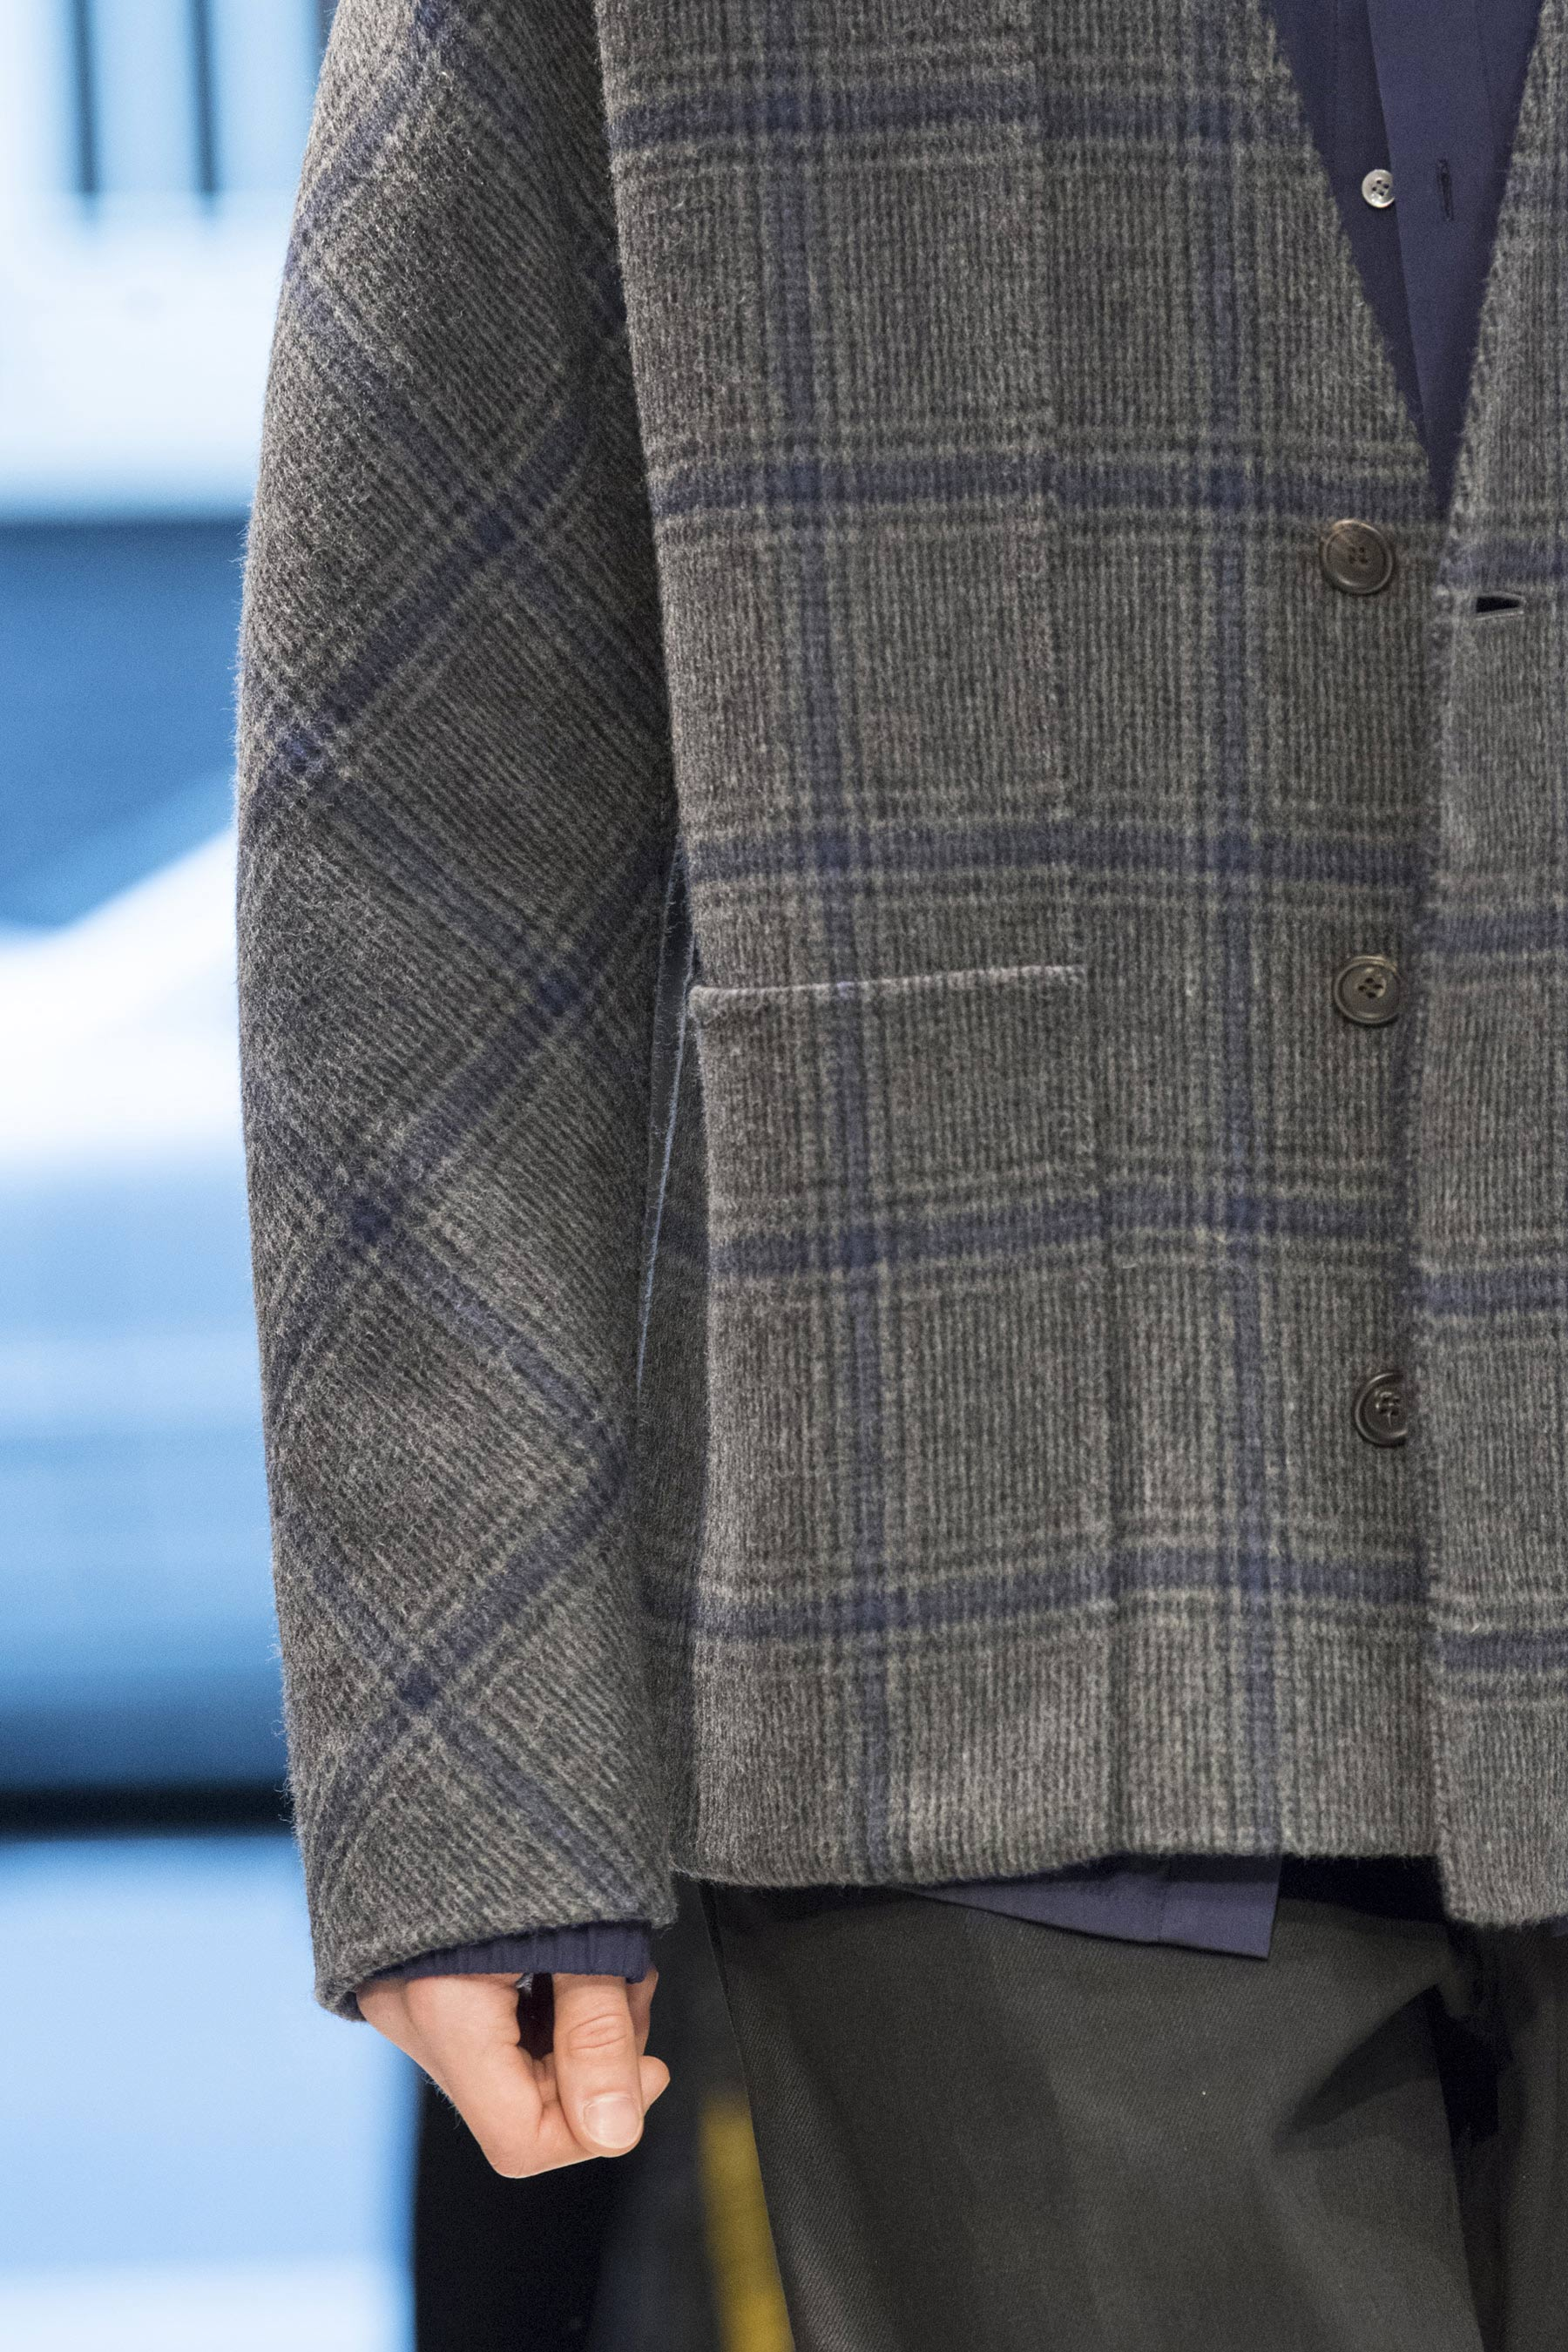 Detail of a checked tweed jacket from Chalayan Men's Fall/Winter 2019 collection shown at London Fashion Week: Men's.